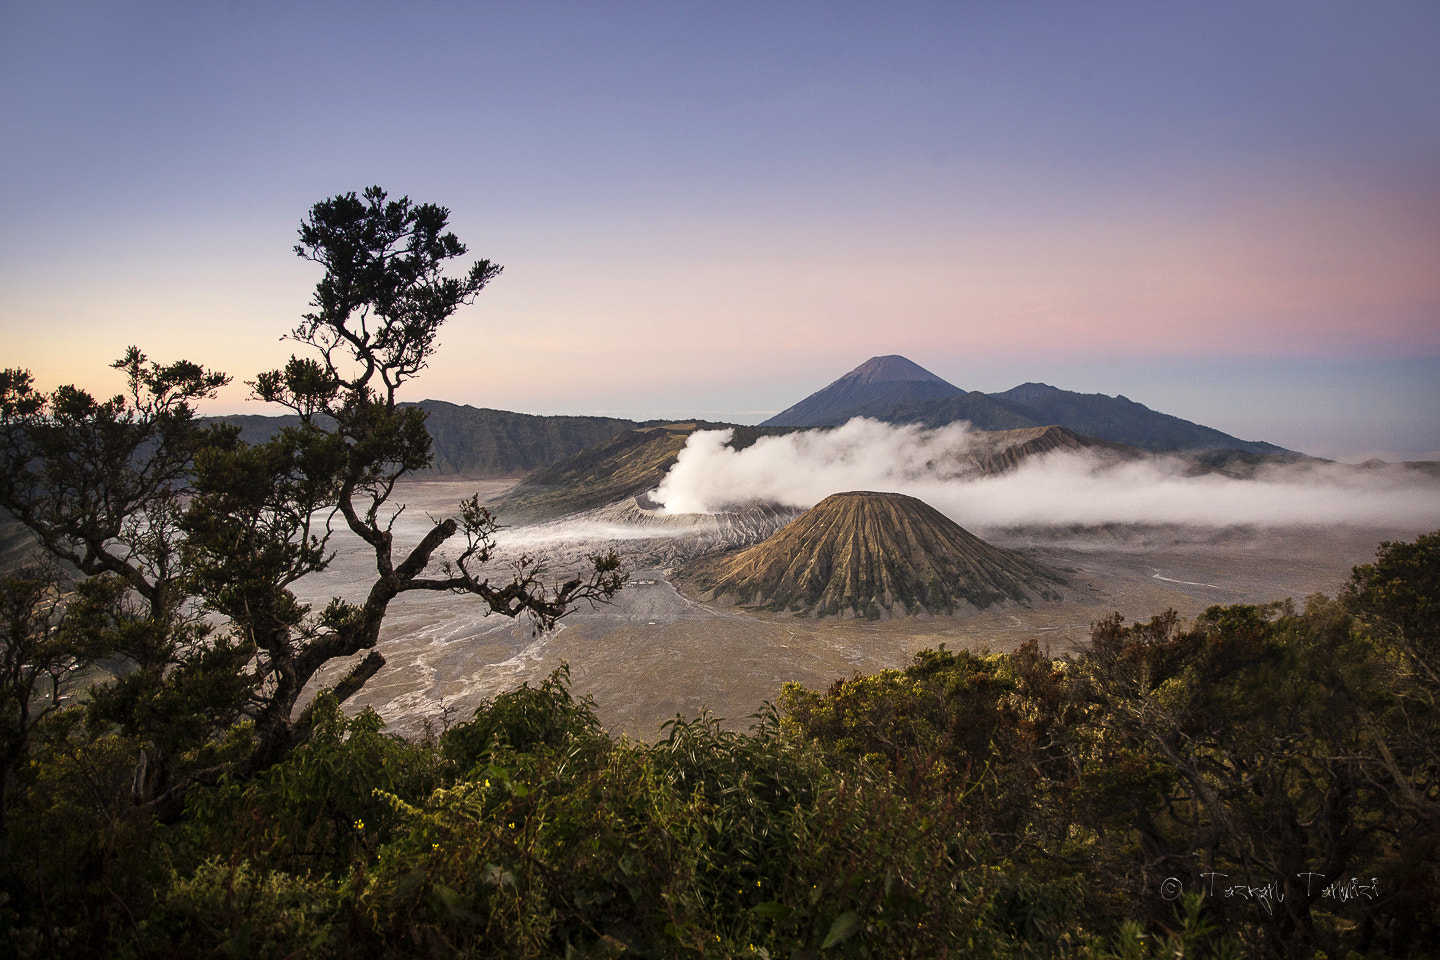 Photograph Bromo, Indonesia by Tazran Tanmizi on 500px